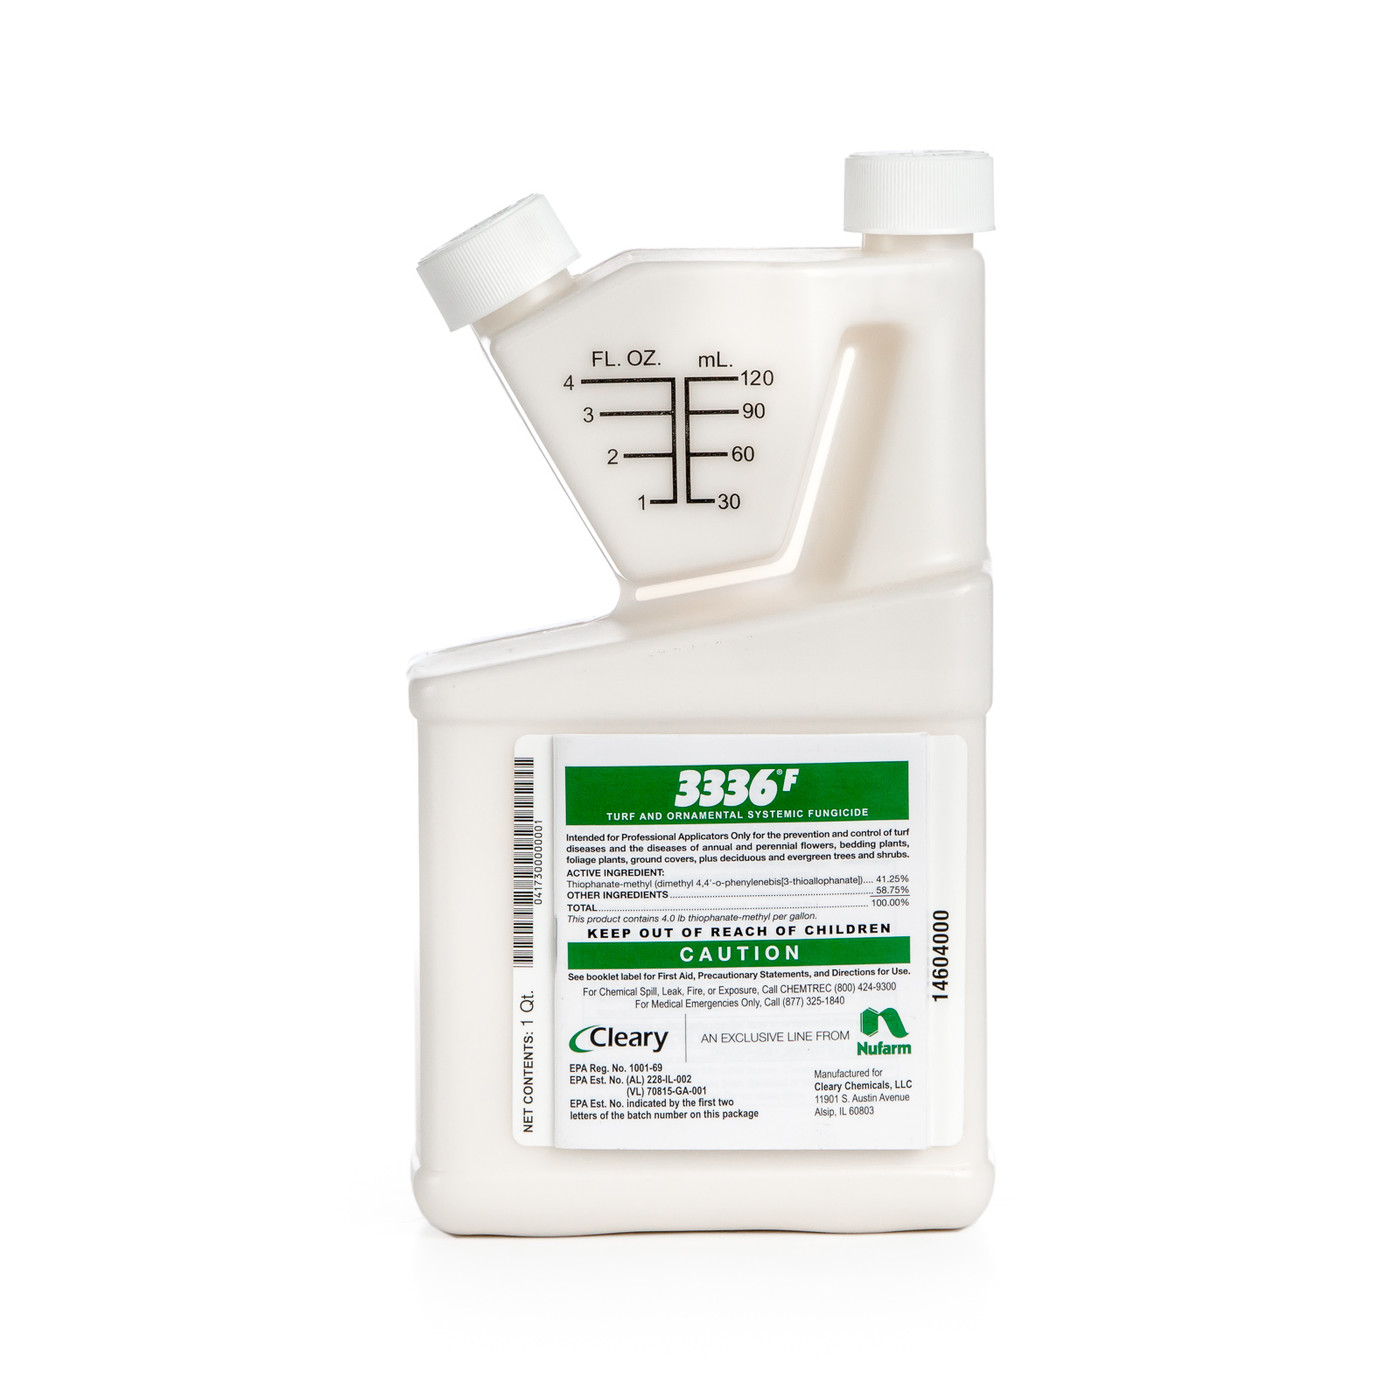 This is a picture of Stupendous 26 Gt Fungicide Label